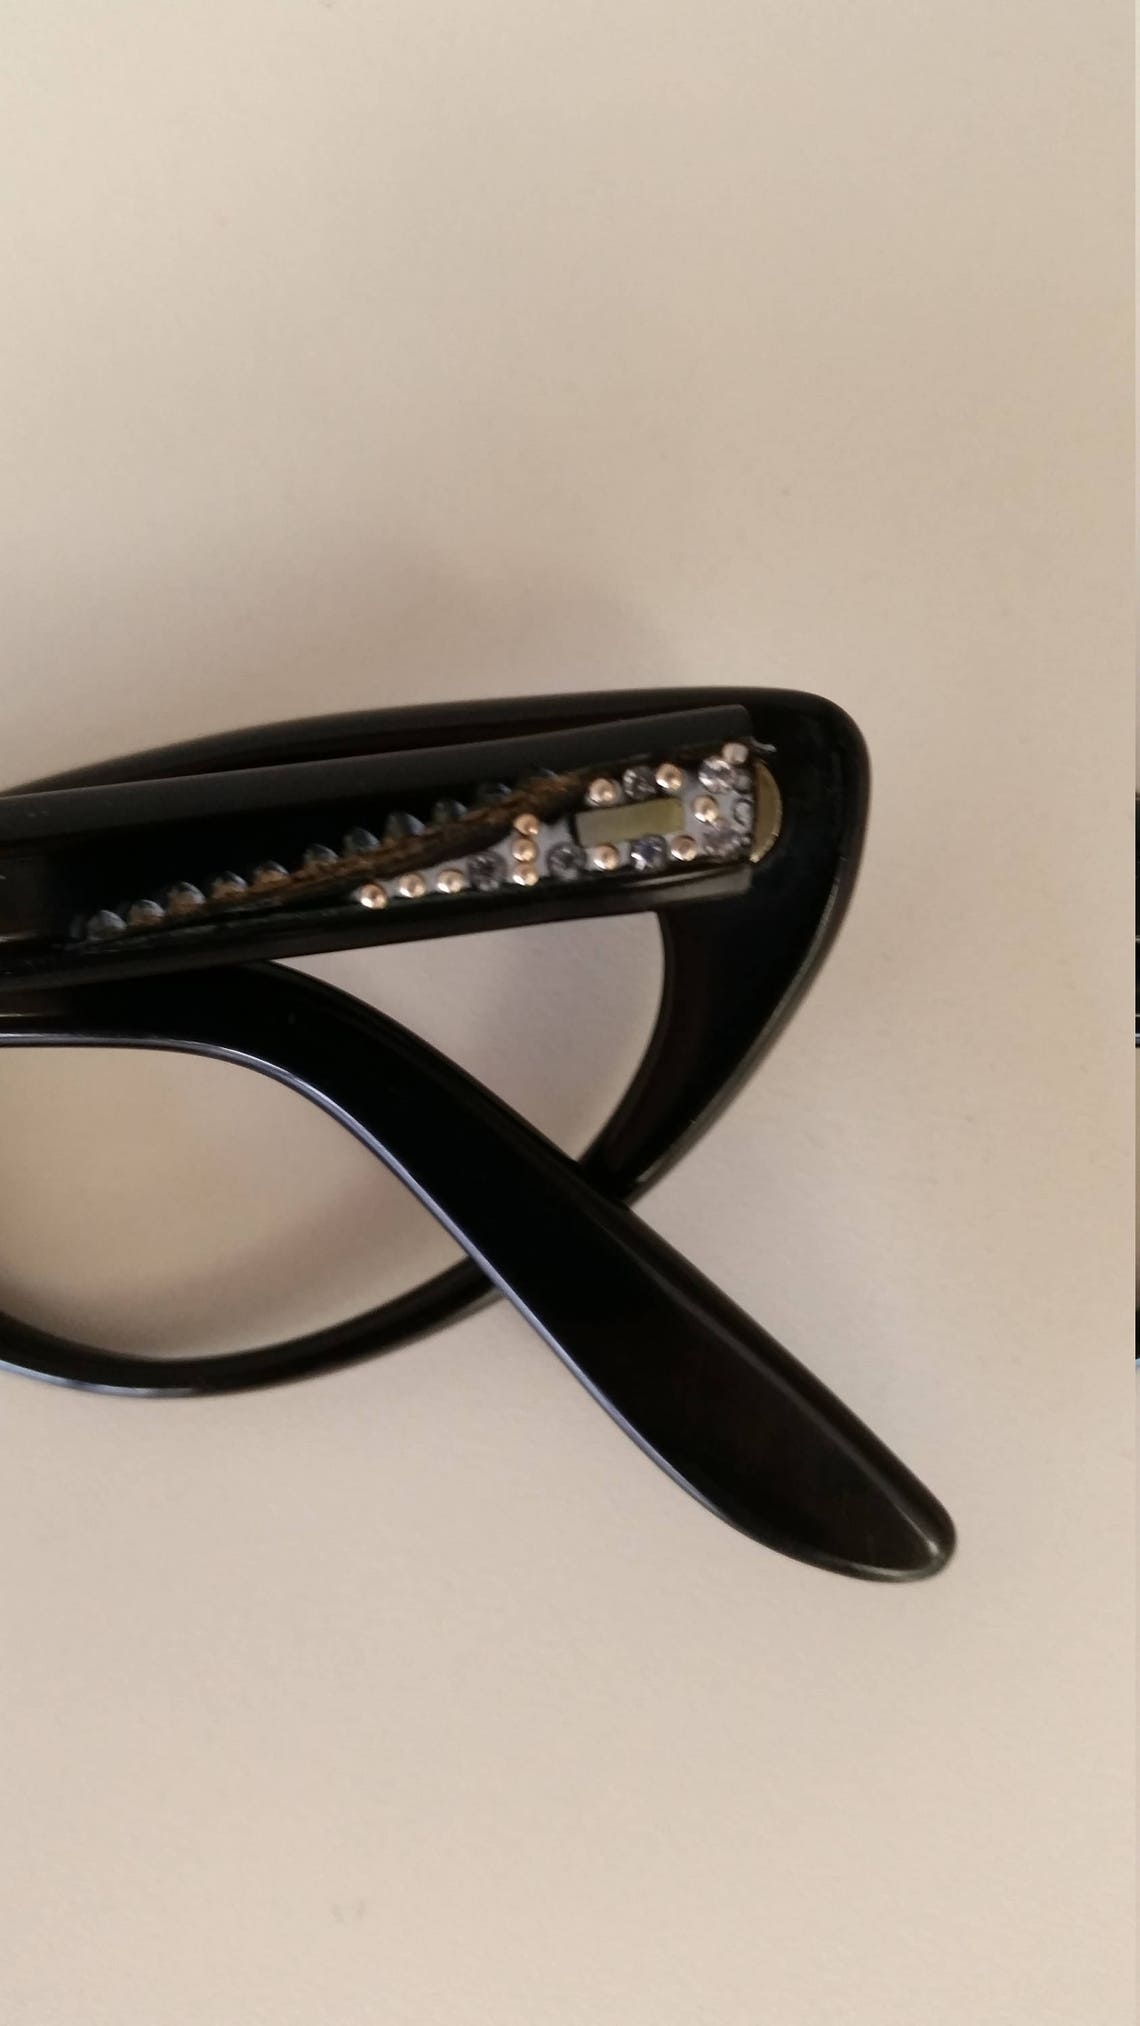 1950s Safilo Cateye Eyeglasses Frame w/ Rhinestone Crystals & Gold Insets; Excellent Condition; No Lenses; Rx-able; Made in Italy; Beautiful